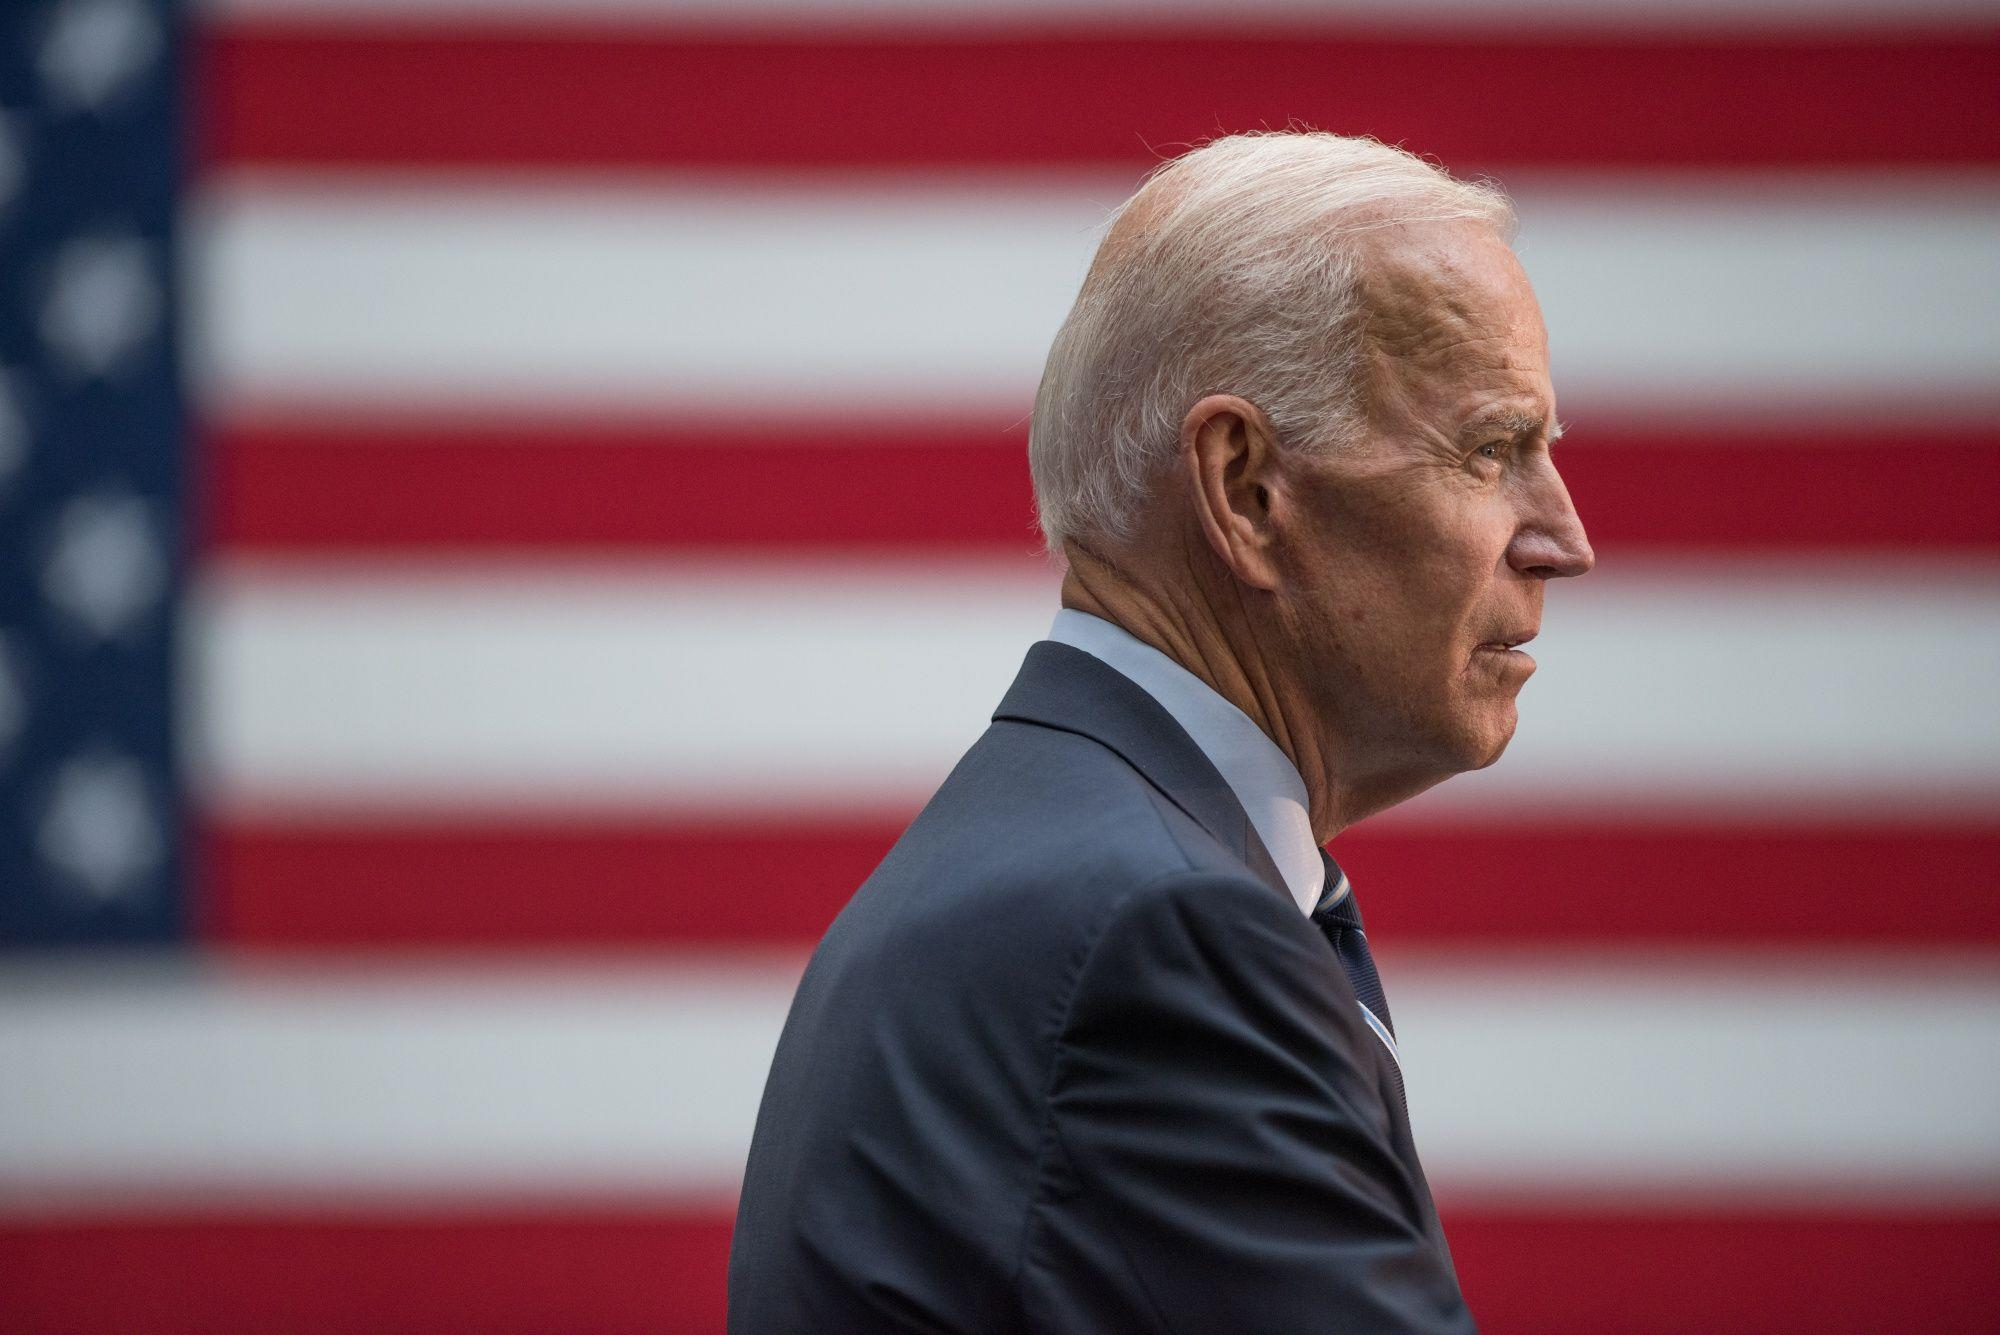 Joe Biden on if Trump is a white supremacist: 'I'm Joe Biden'